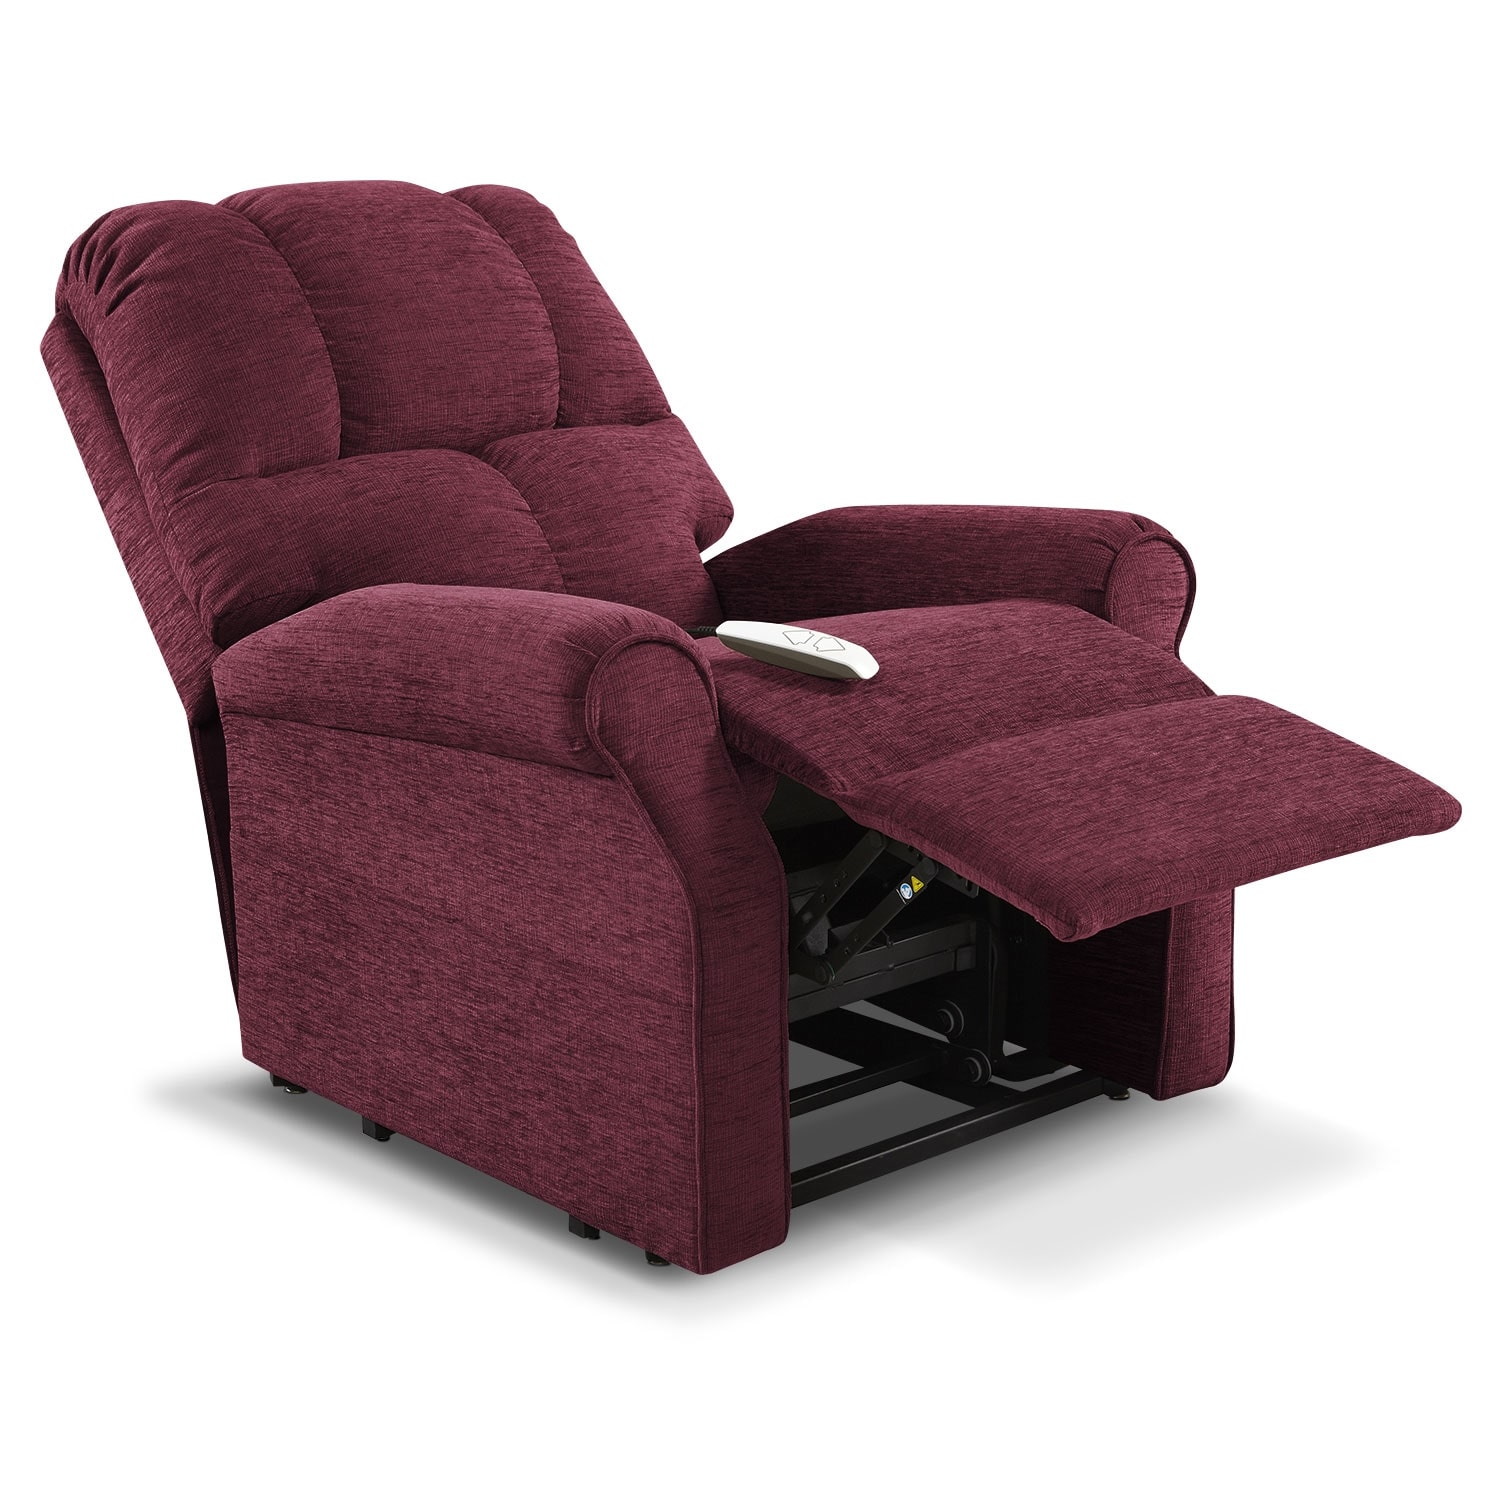 Tillie Lift Chair Bordeaux